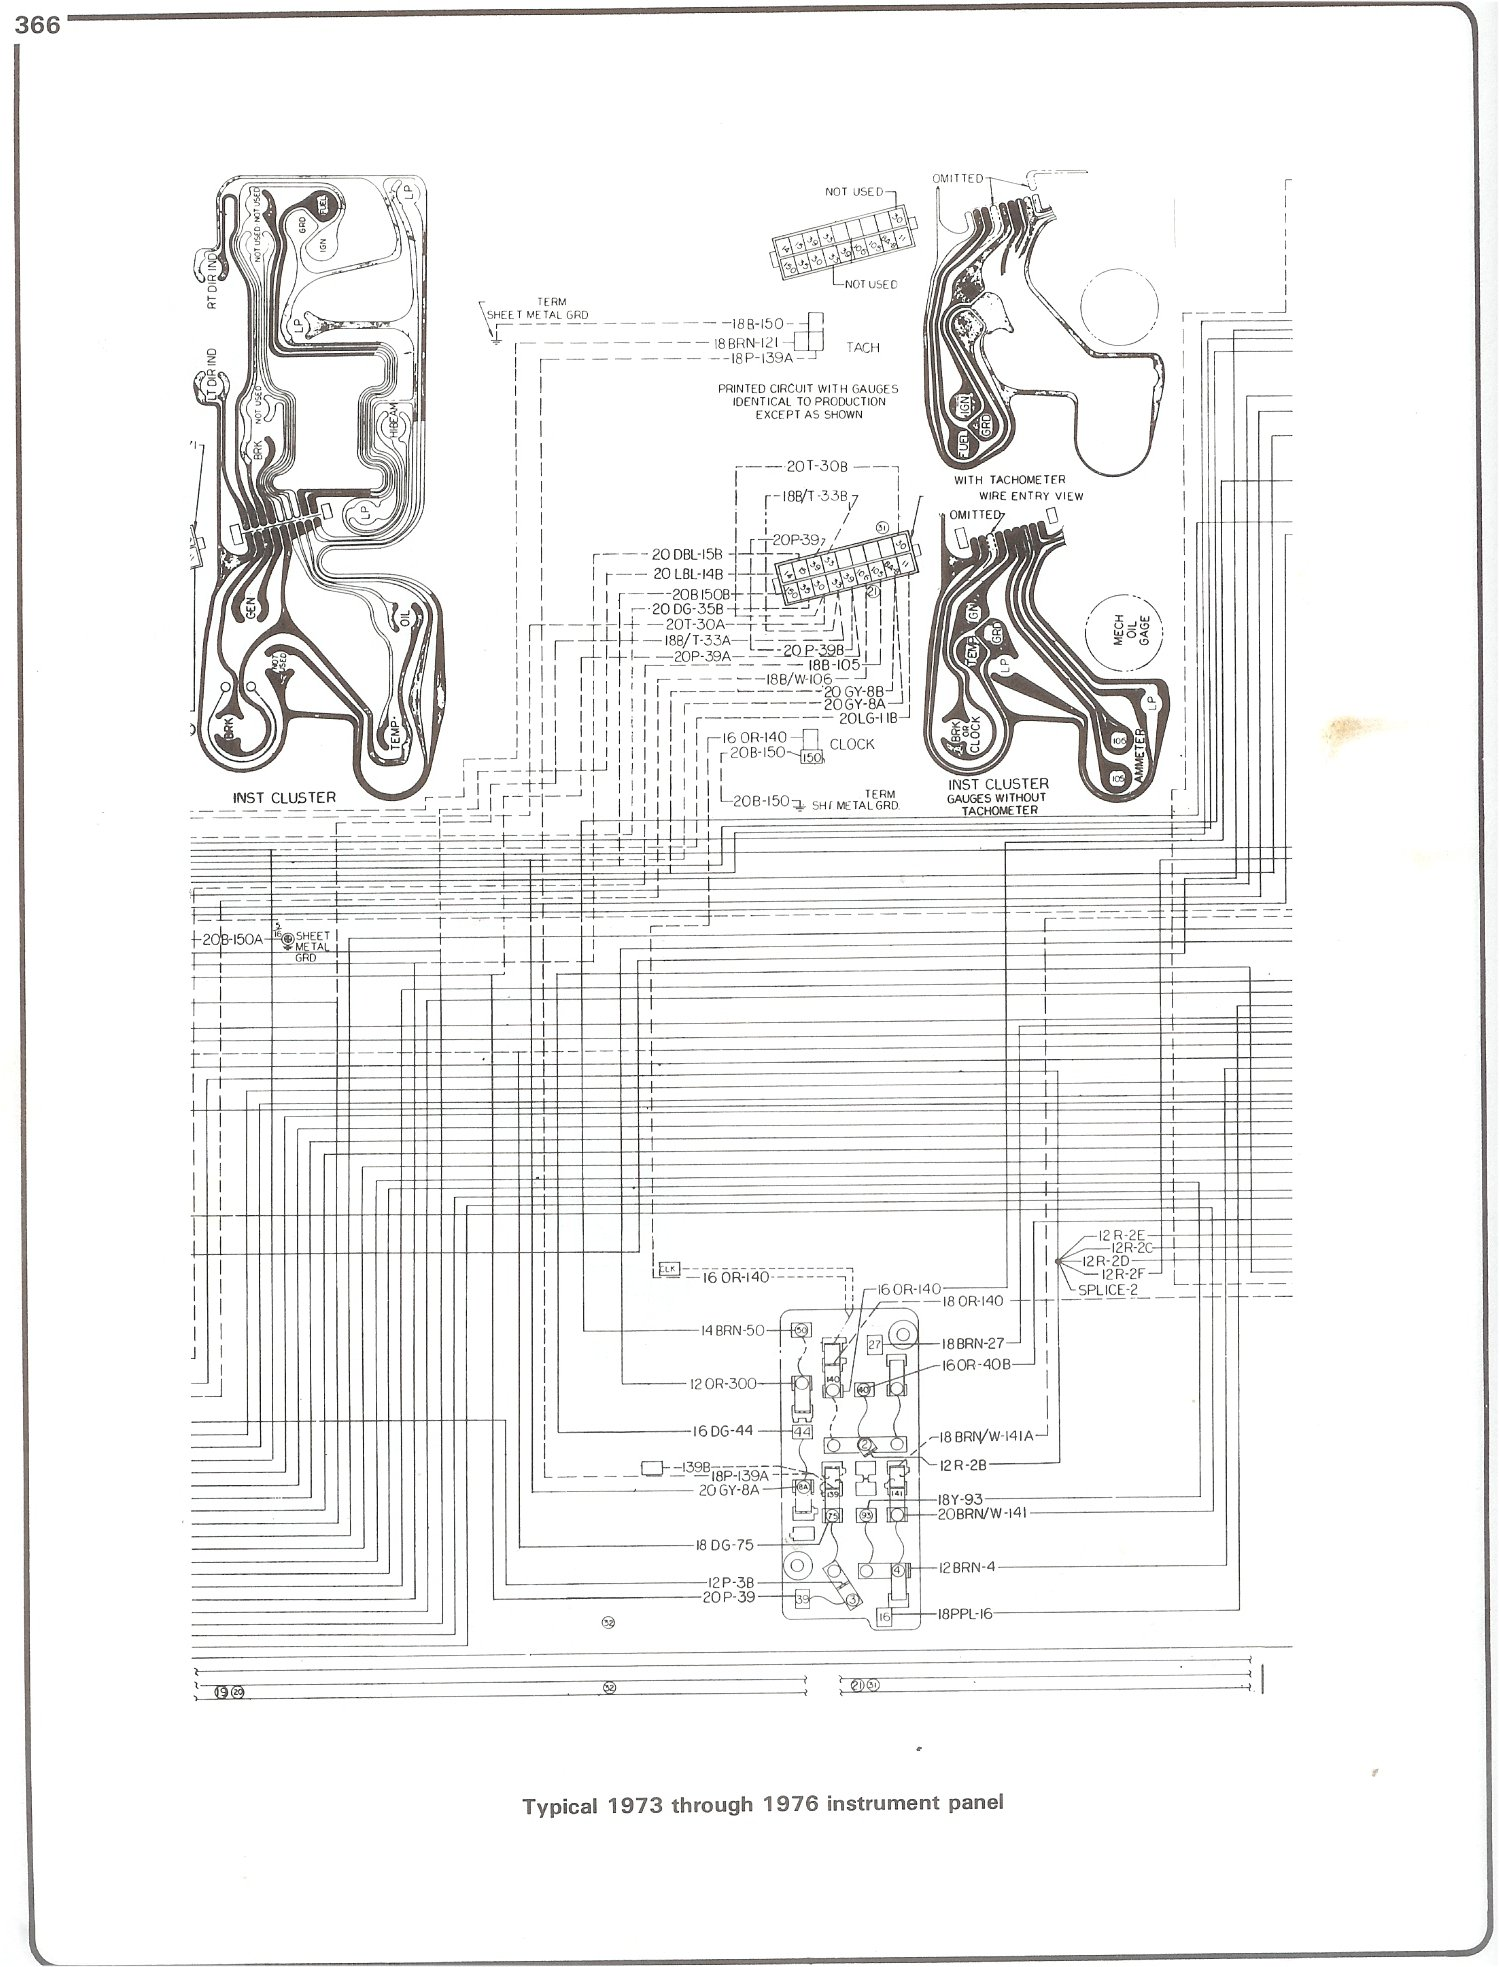 73 76_instrument complete 73 87 wiring diagrams small block chevy starter wiring diagram at gsmx.co